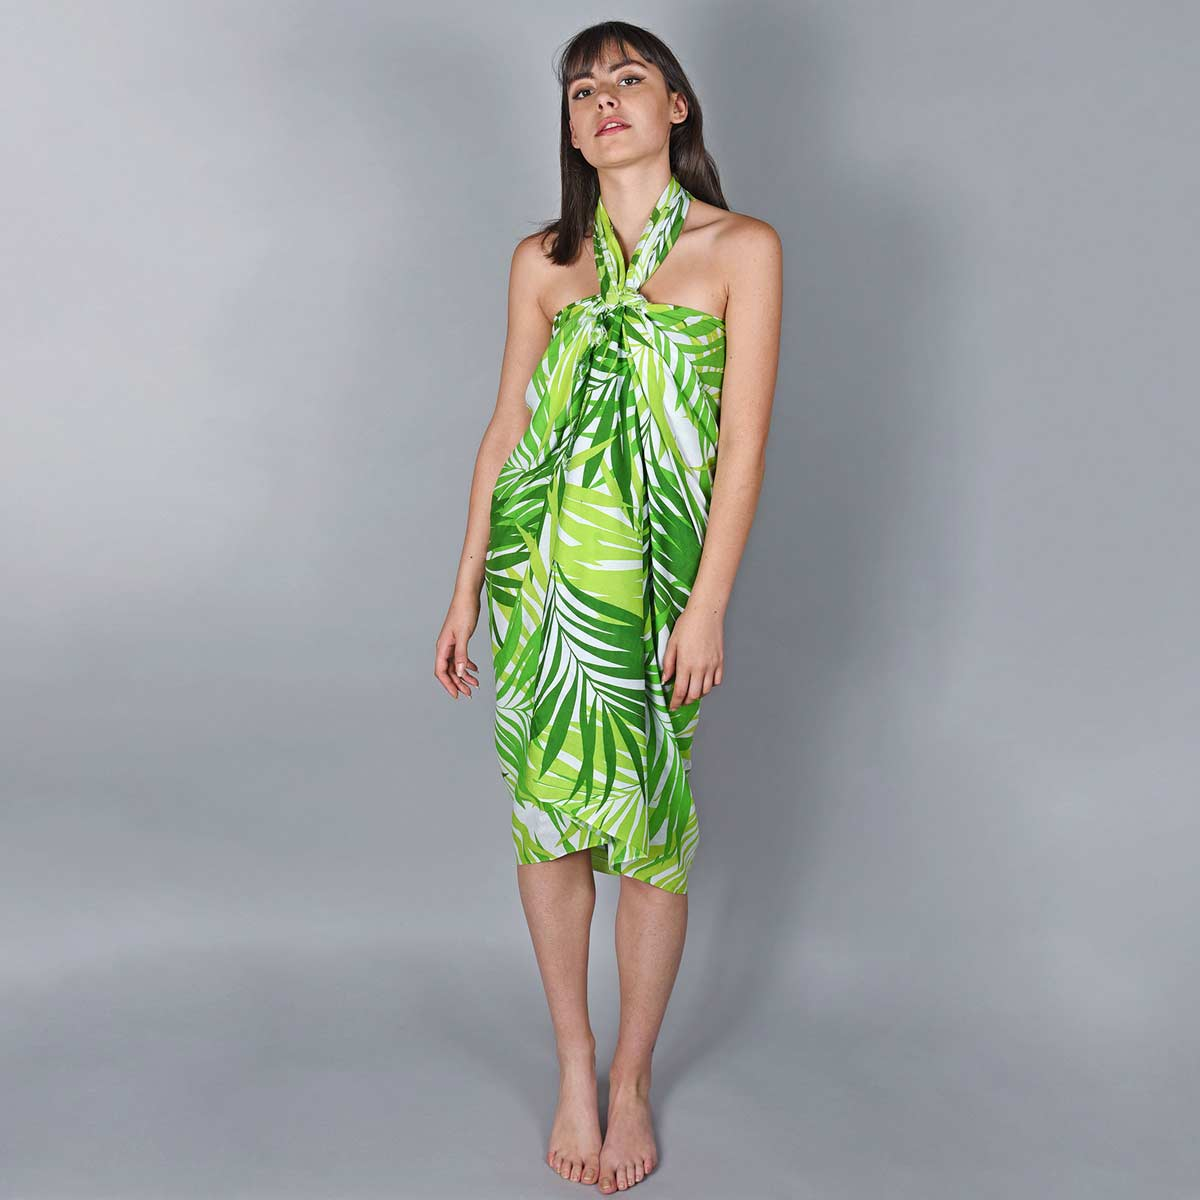 AT-06100-VF12-2-pareo-femme-vert-fougeres